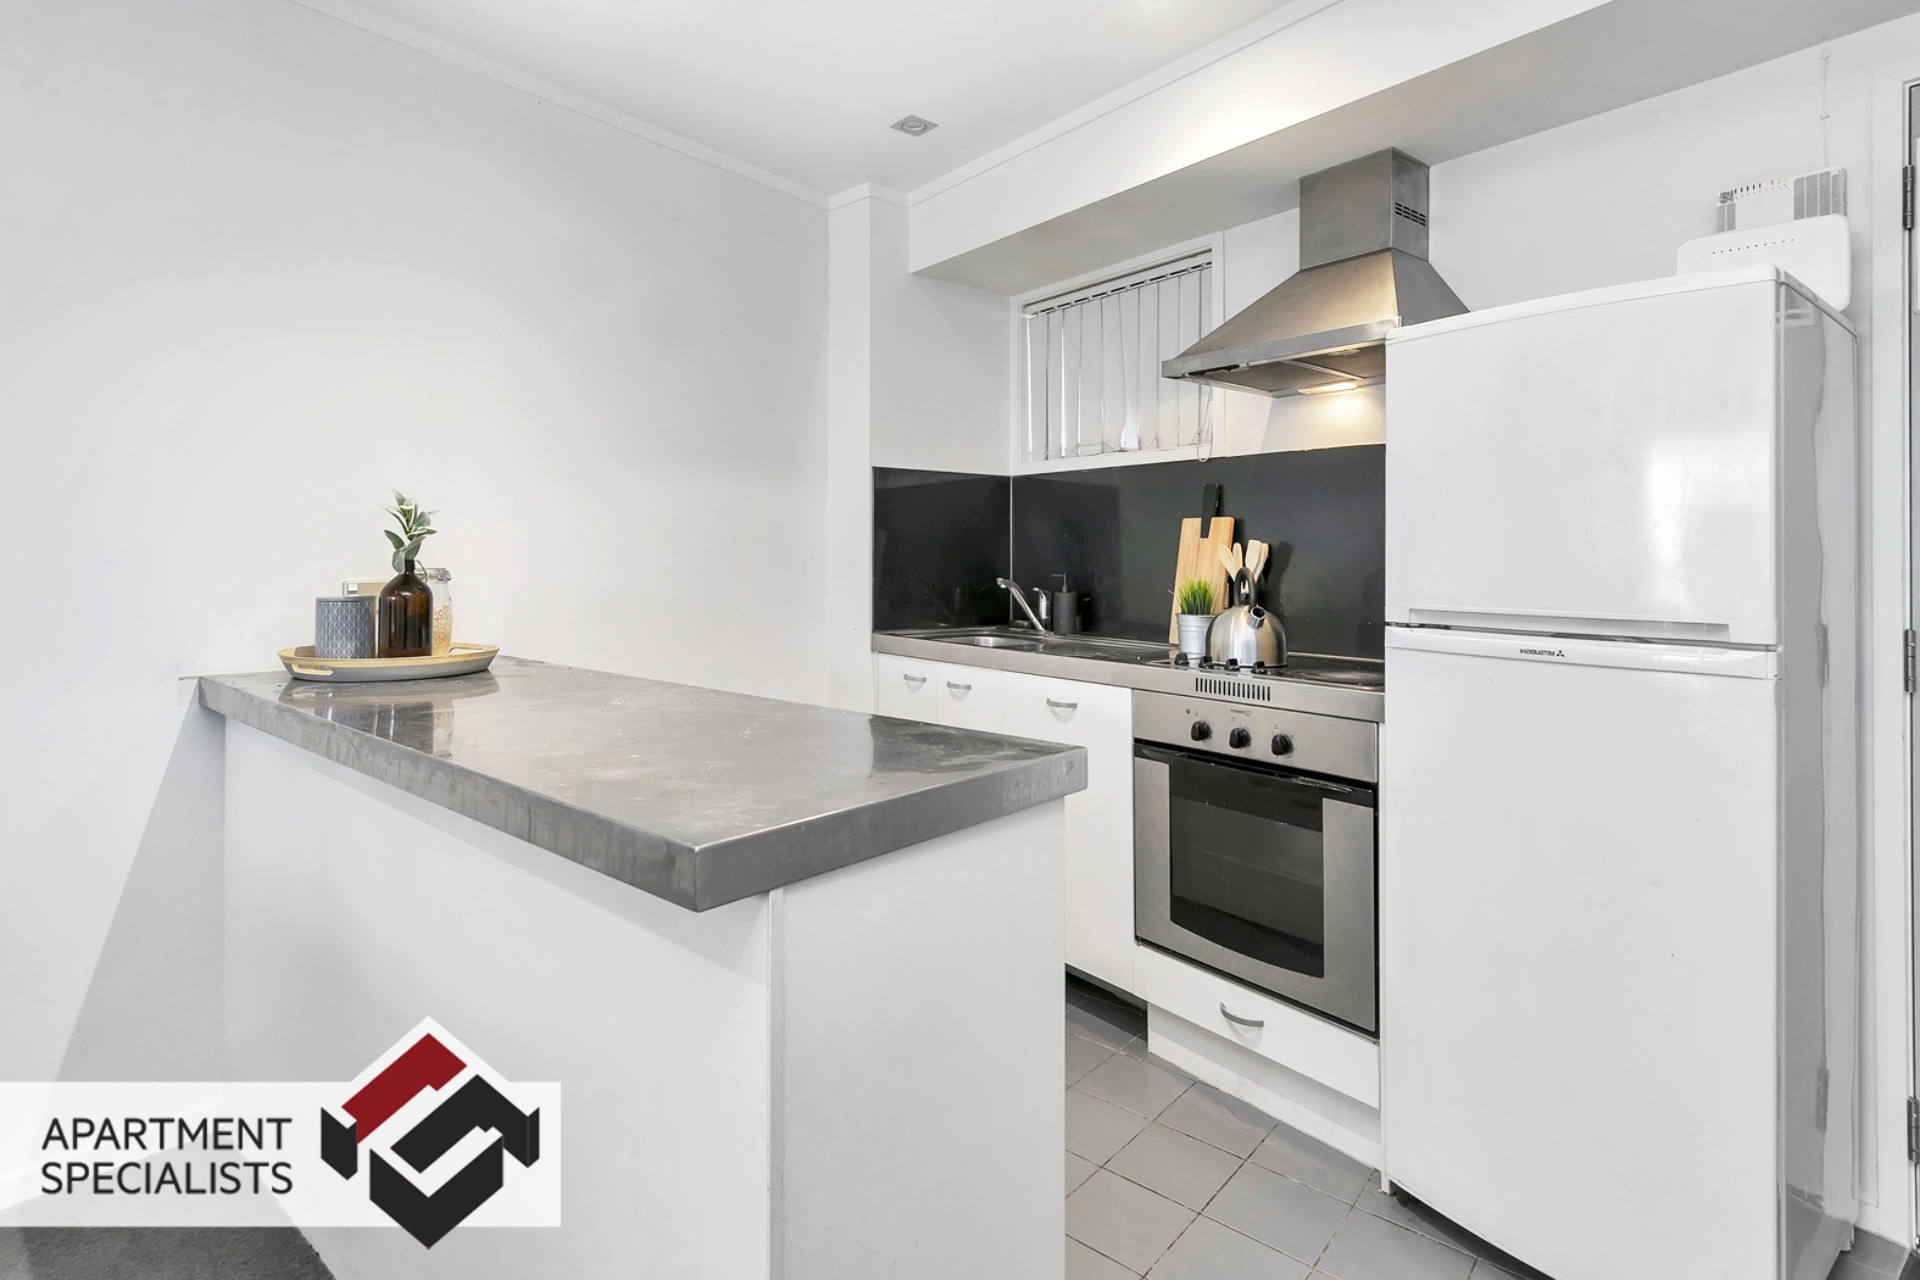 6 | 207 Federal Street, City Centre | Apartment Specialists